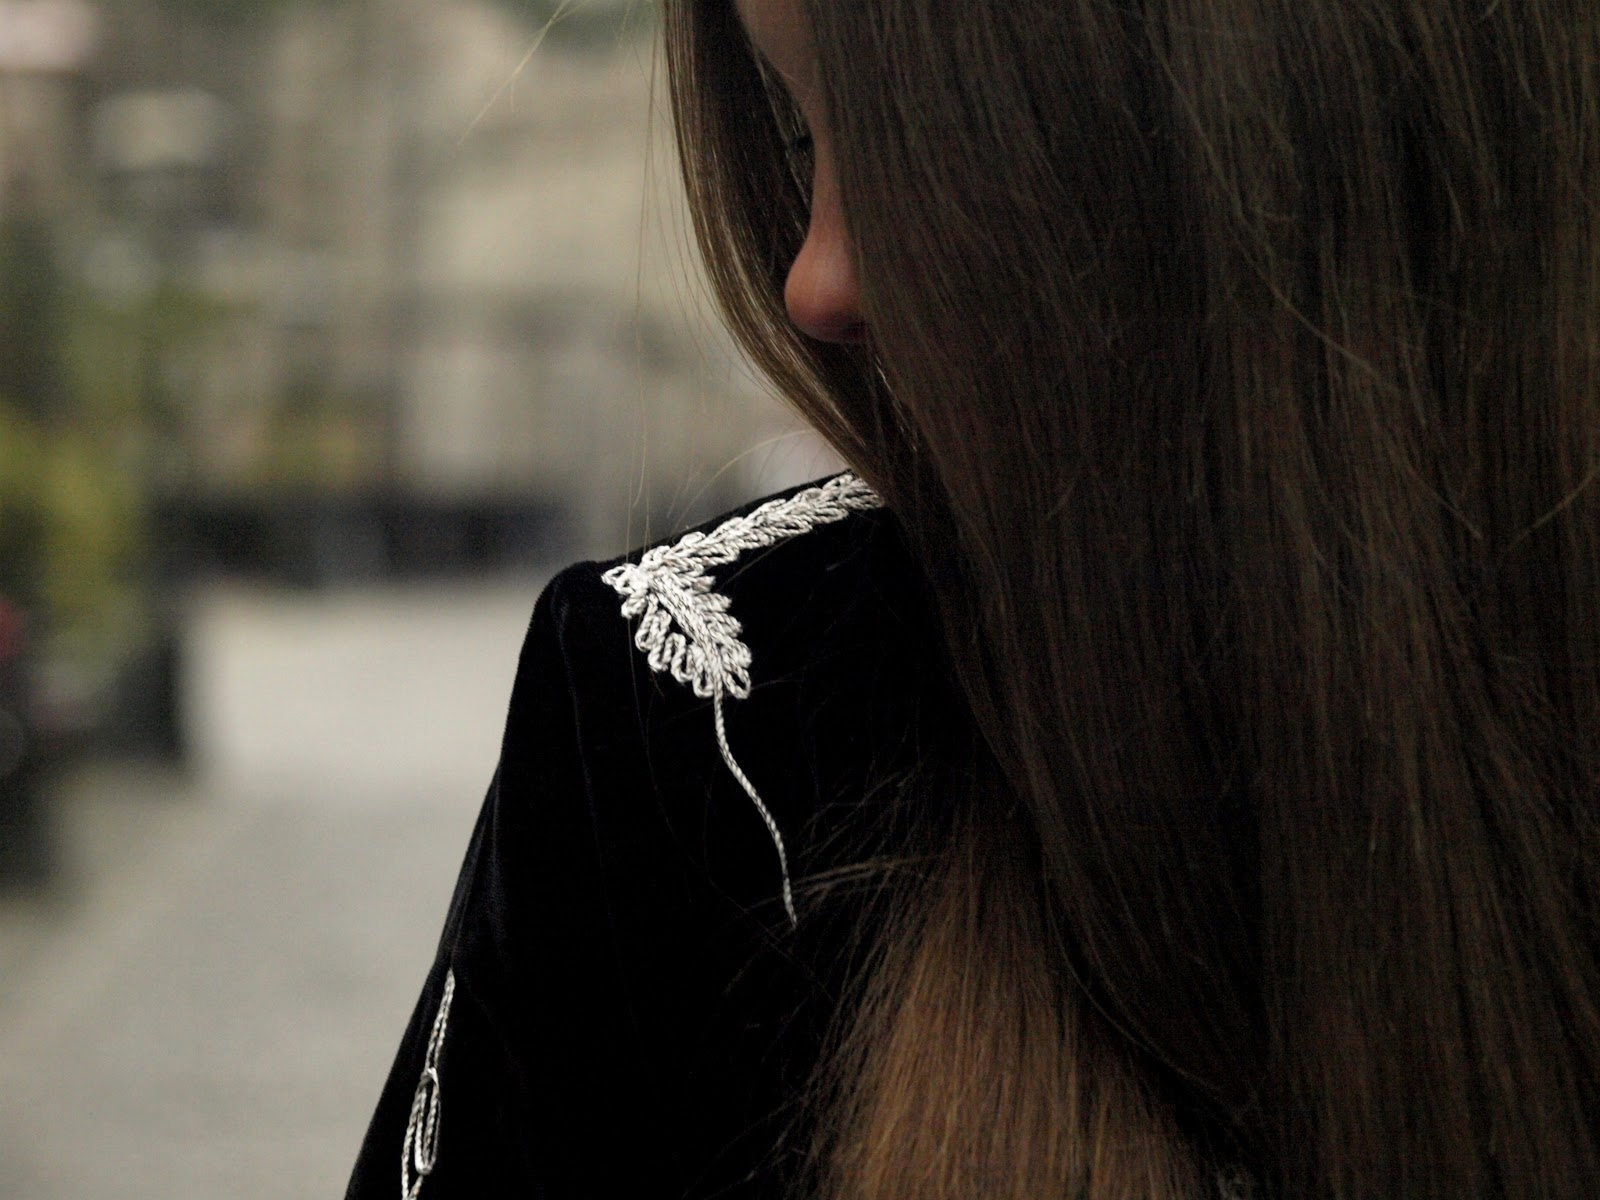 zara, paris collection, h&m, blouse, fashion, detail, mode, cold weather, frozen